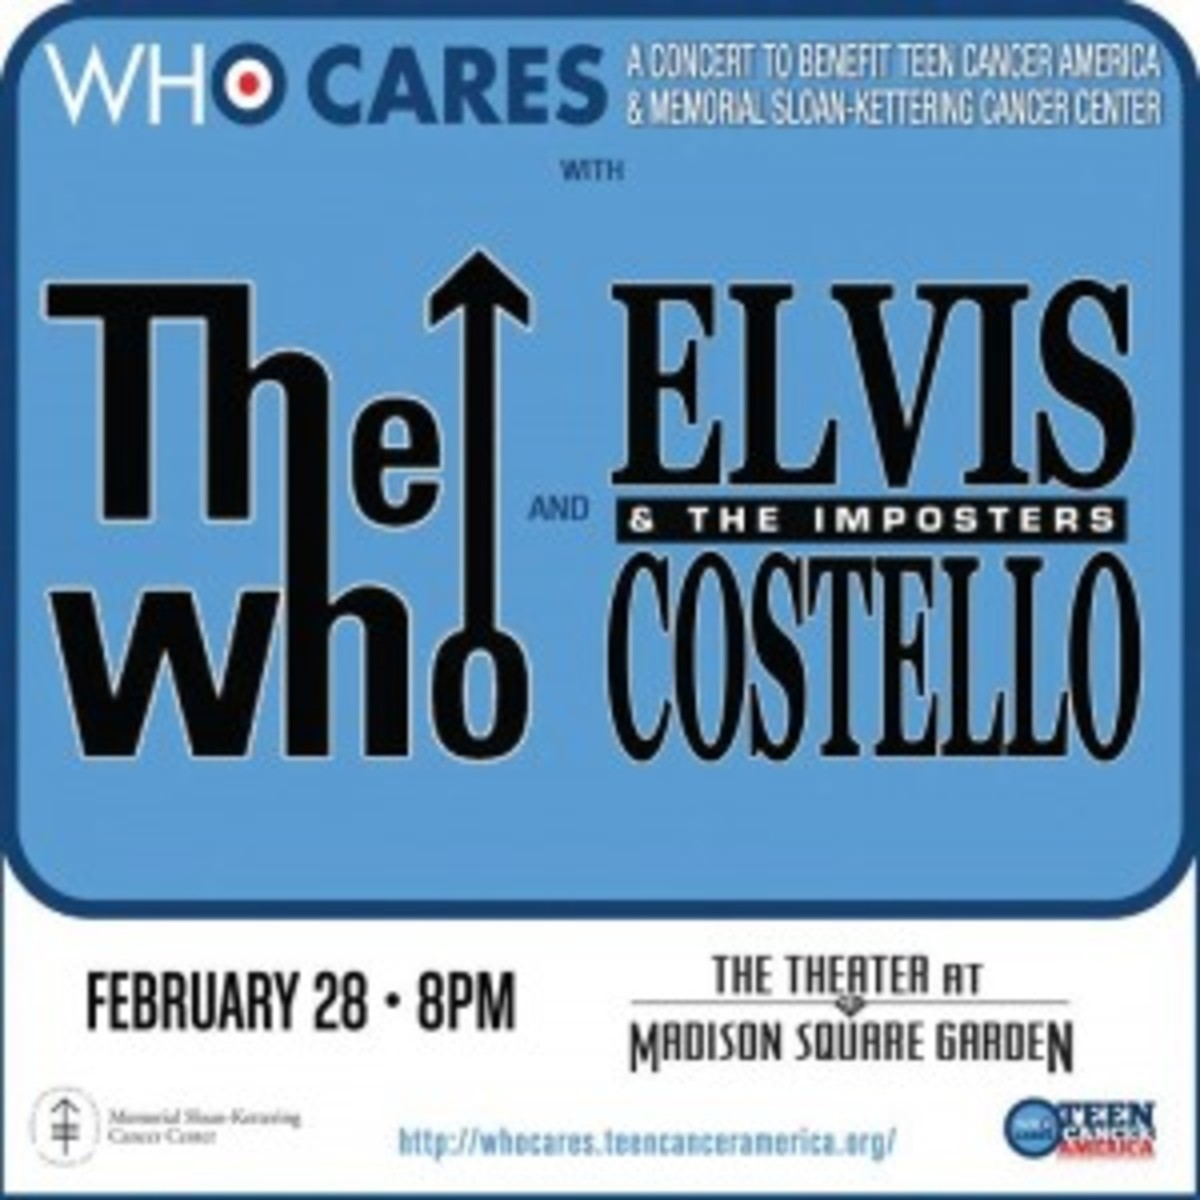 The Who and Elvis Costello and The Imposters performed a great night of music at NYC's Theater at Madison Square Garden on February 28th in aid of Teen Cancer America and Memorial Sloan-Kettering Cancer Center.